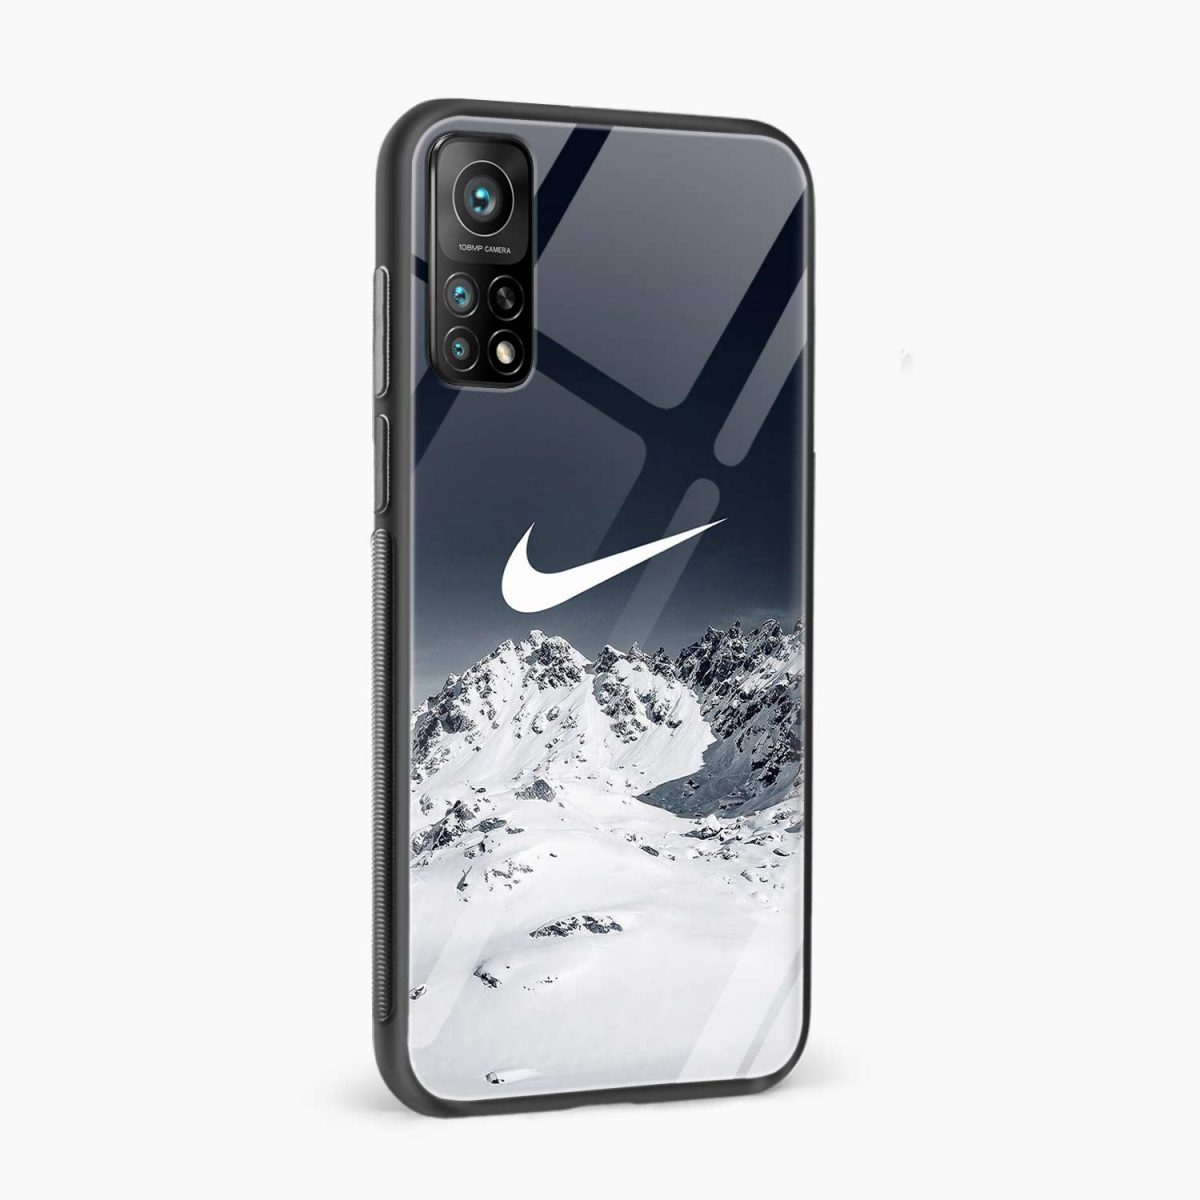 nike mountains xiaomi mi 10t pro back cover side view